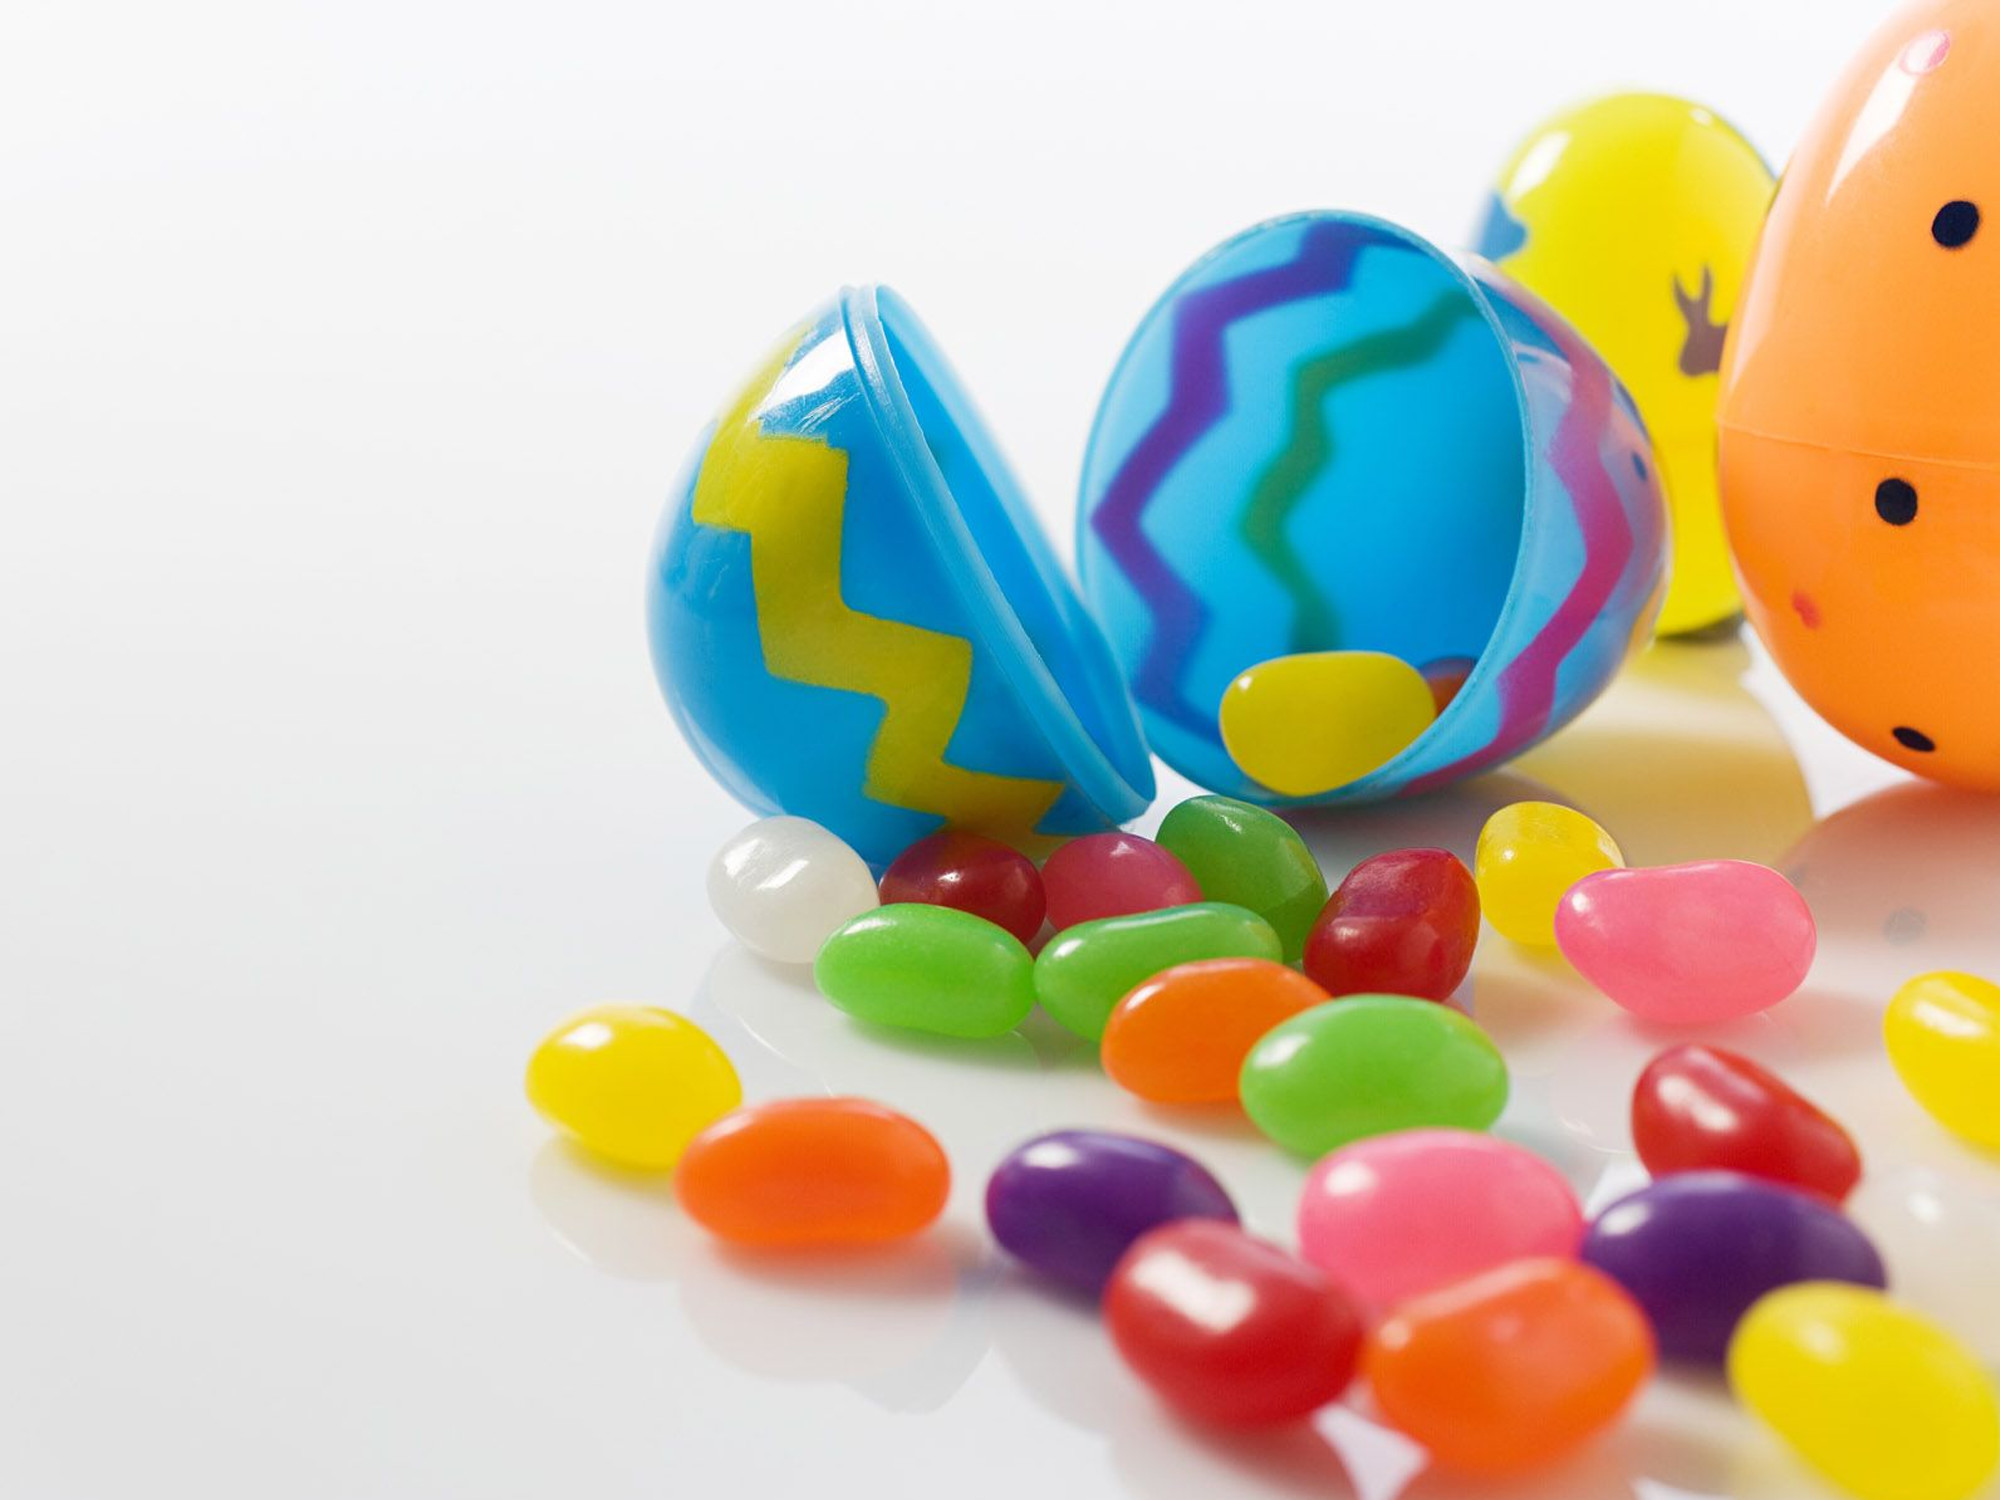 2000x1500 Eggs and Jellybeans Easter Wallpaper